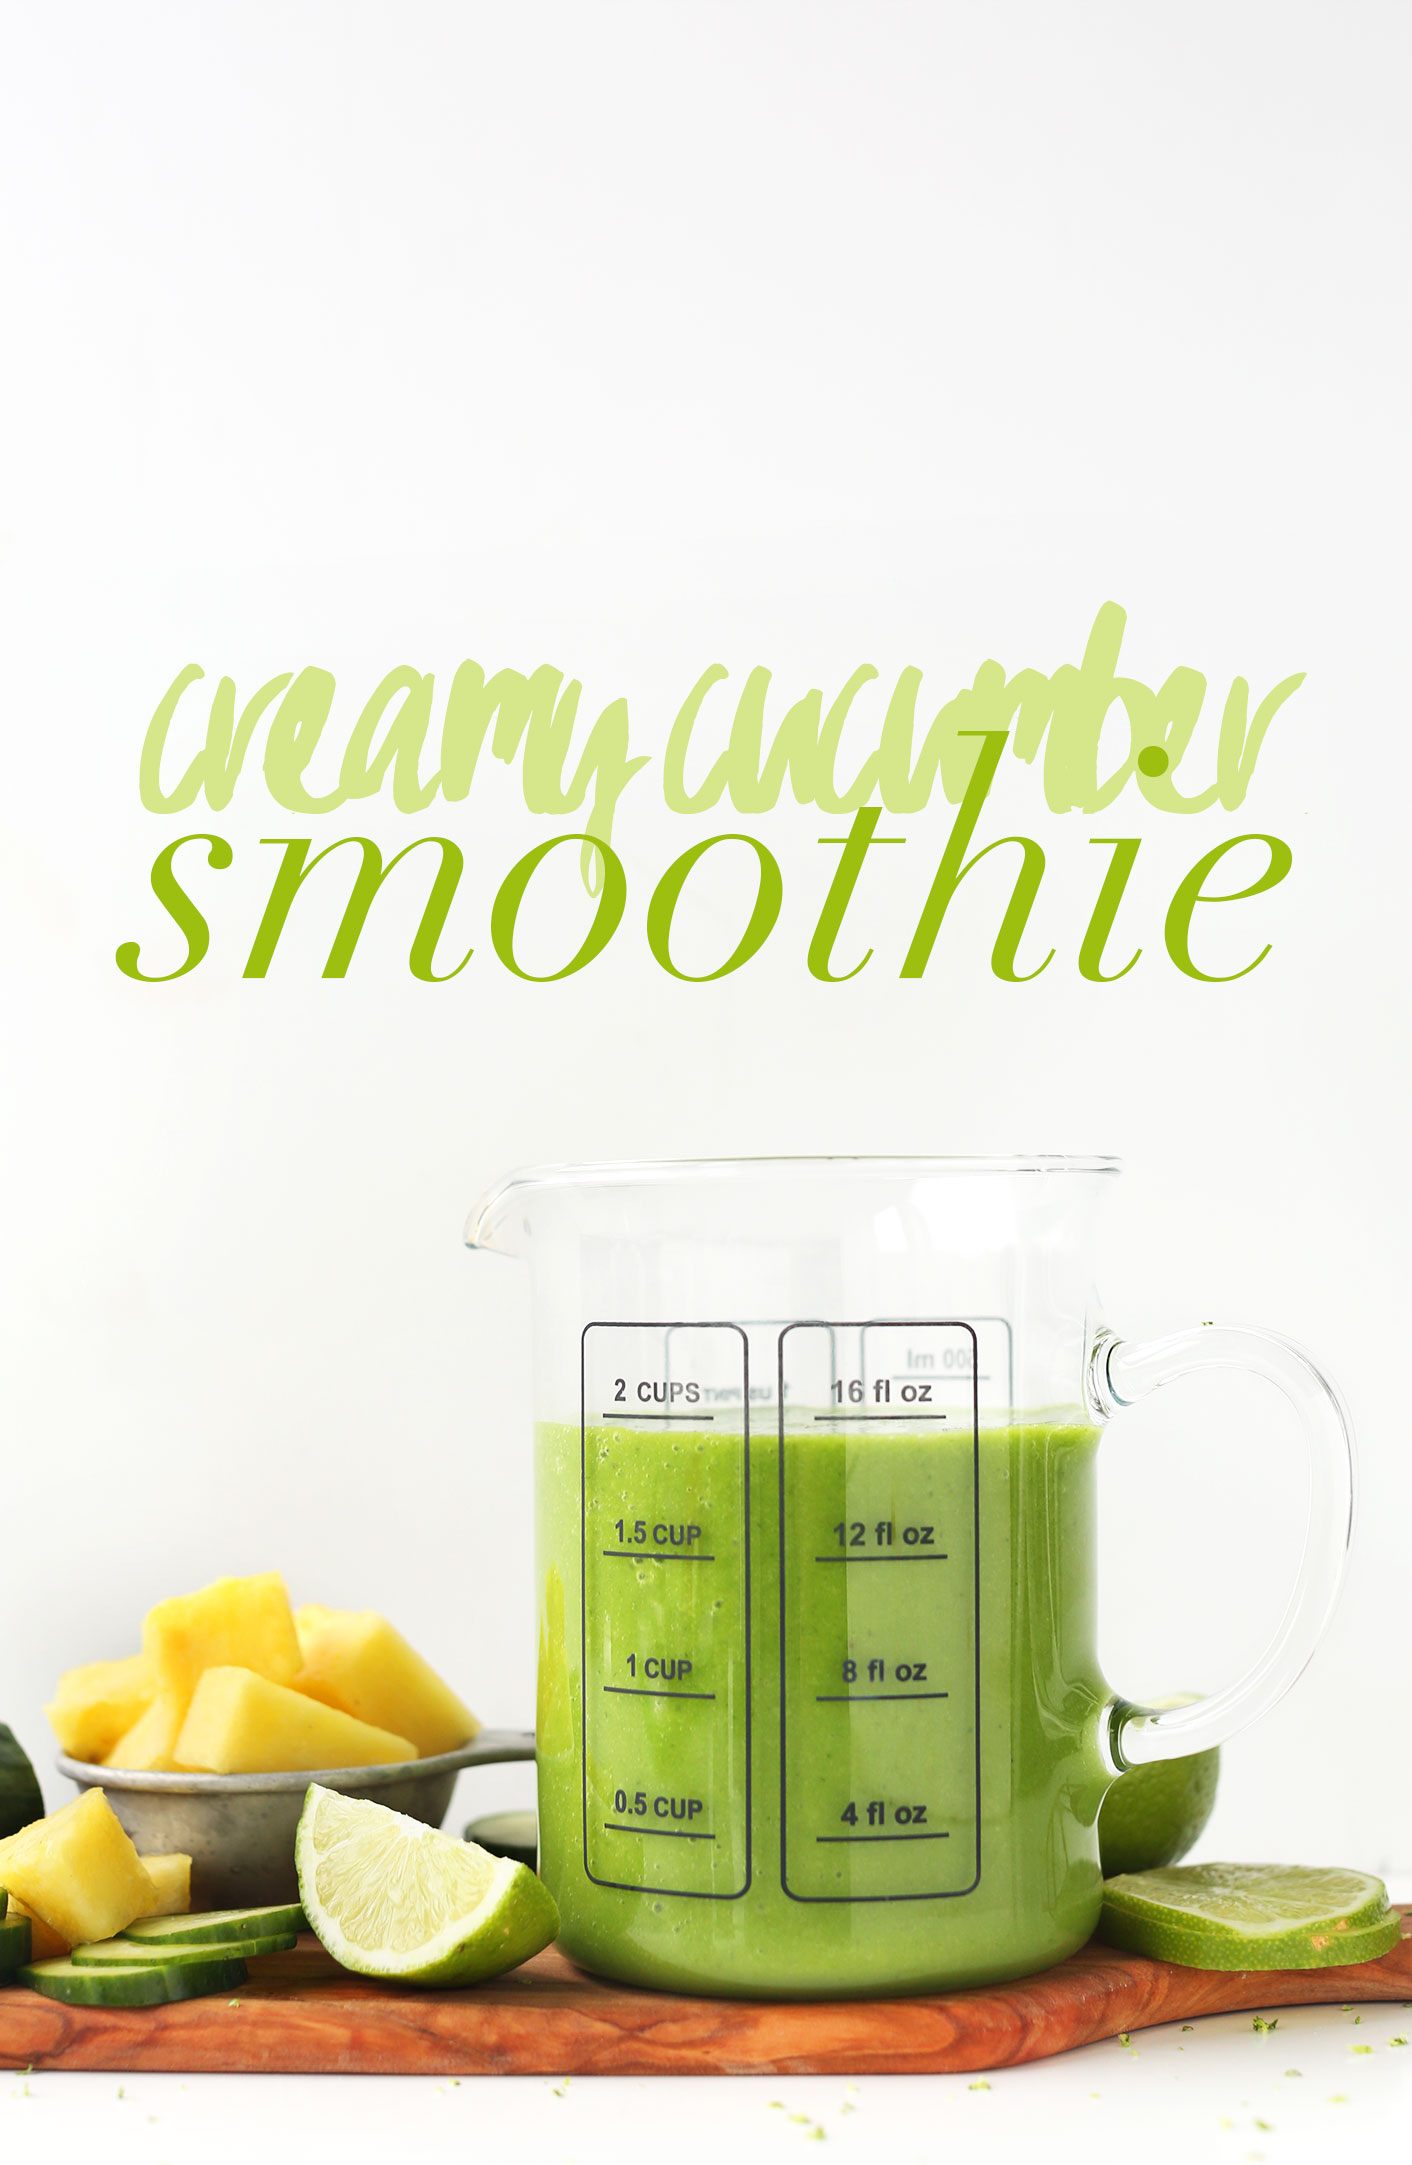 Measuring glass filled with our gluten-free vegan Creamy Cucumber Smoothie recipe